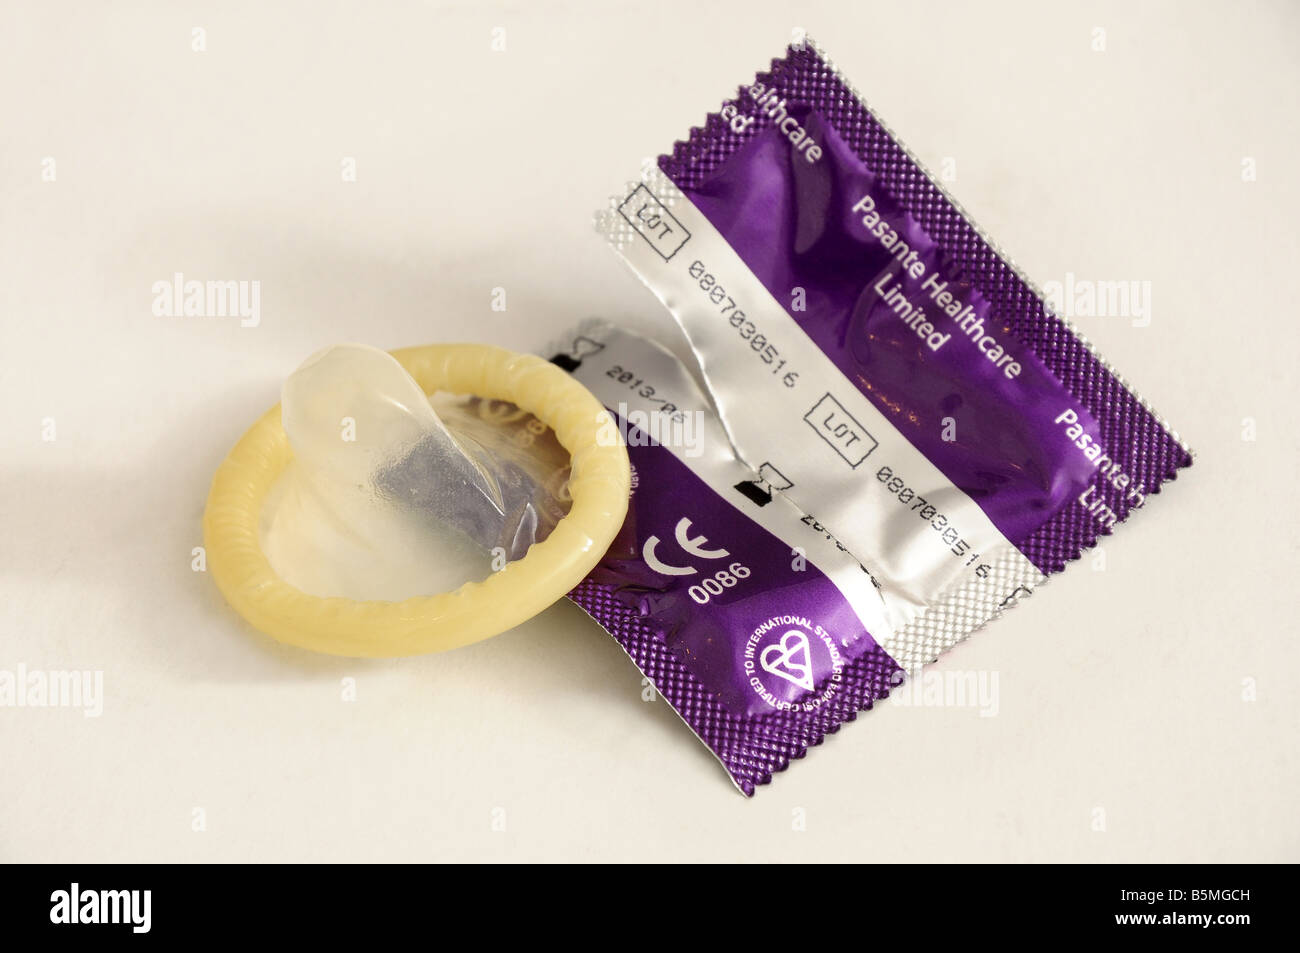 Condom beside packaging - Stock Image